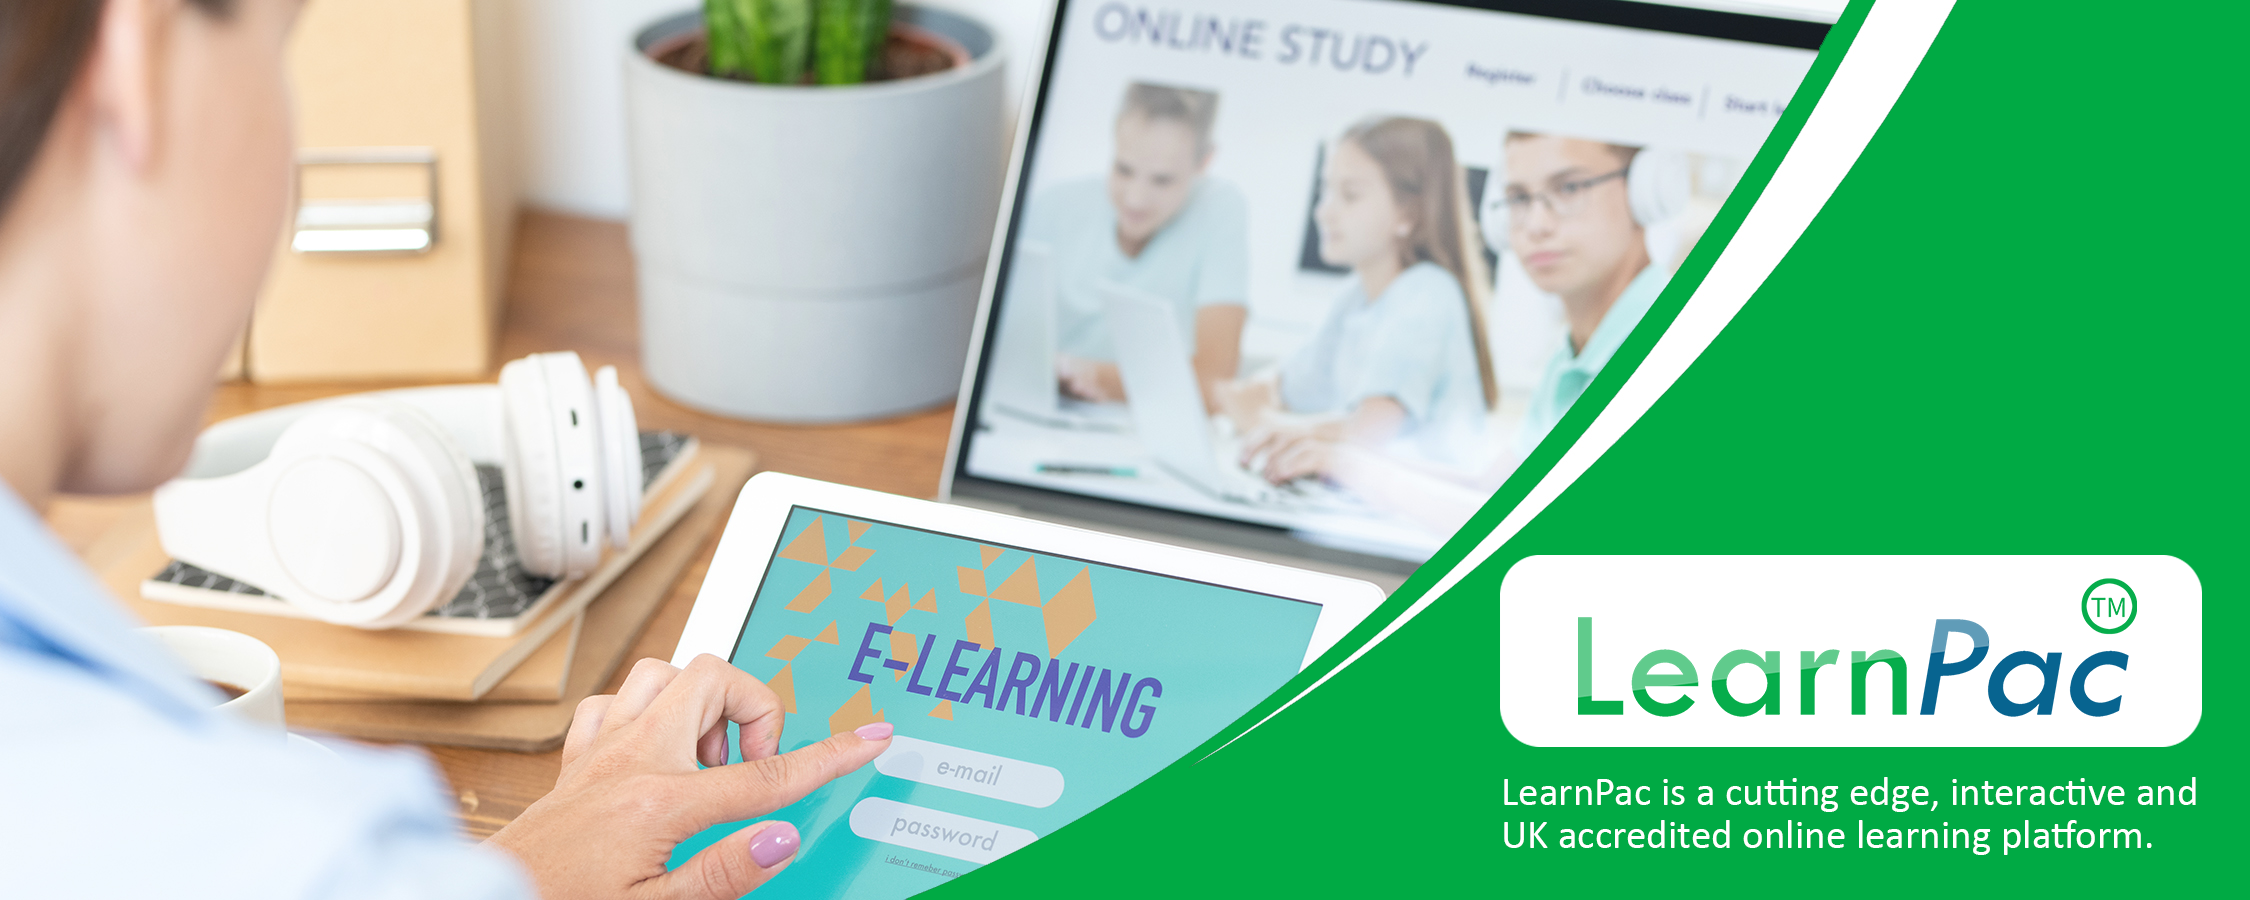 Infection Control in Health and Care - Online Learning Courses - E-Learning Courses - LearnPac Systems UK -